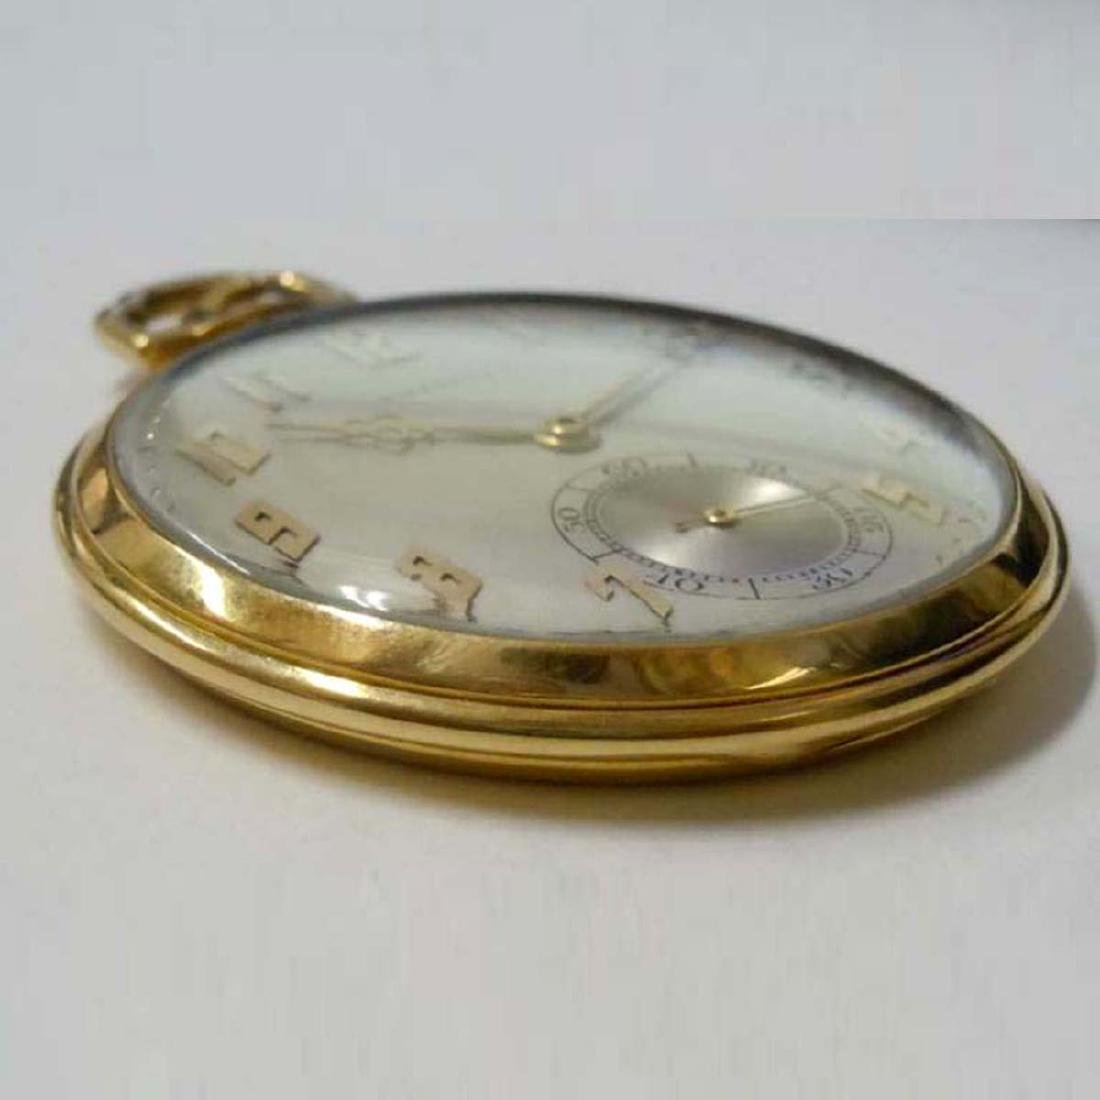 ART DECO 14KT GOLD IWC FOR TIFFANY & Co. POCKET WATCH ; - 8